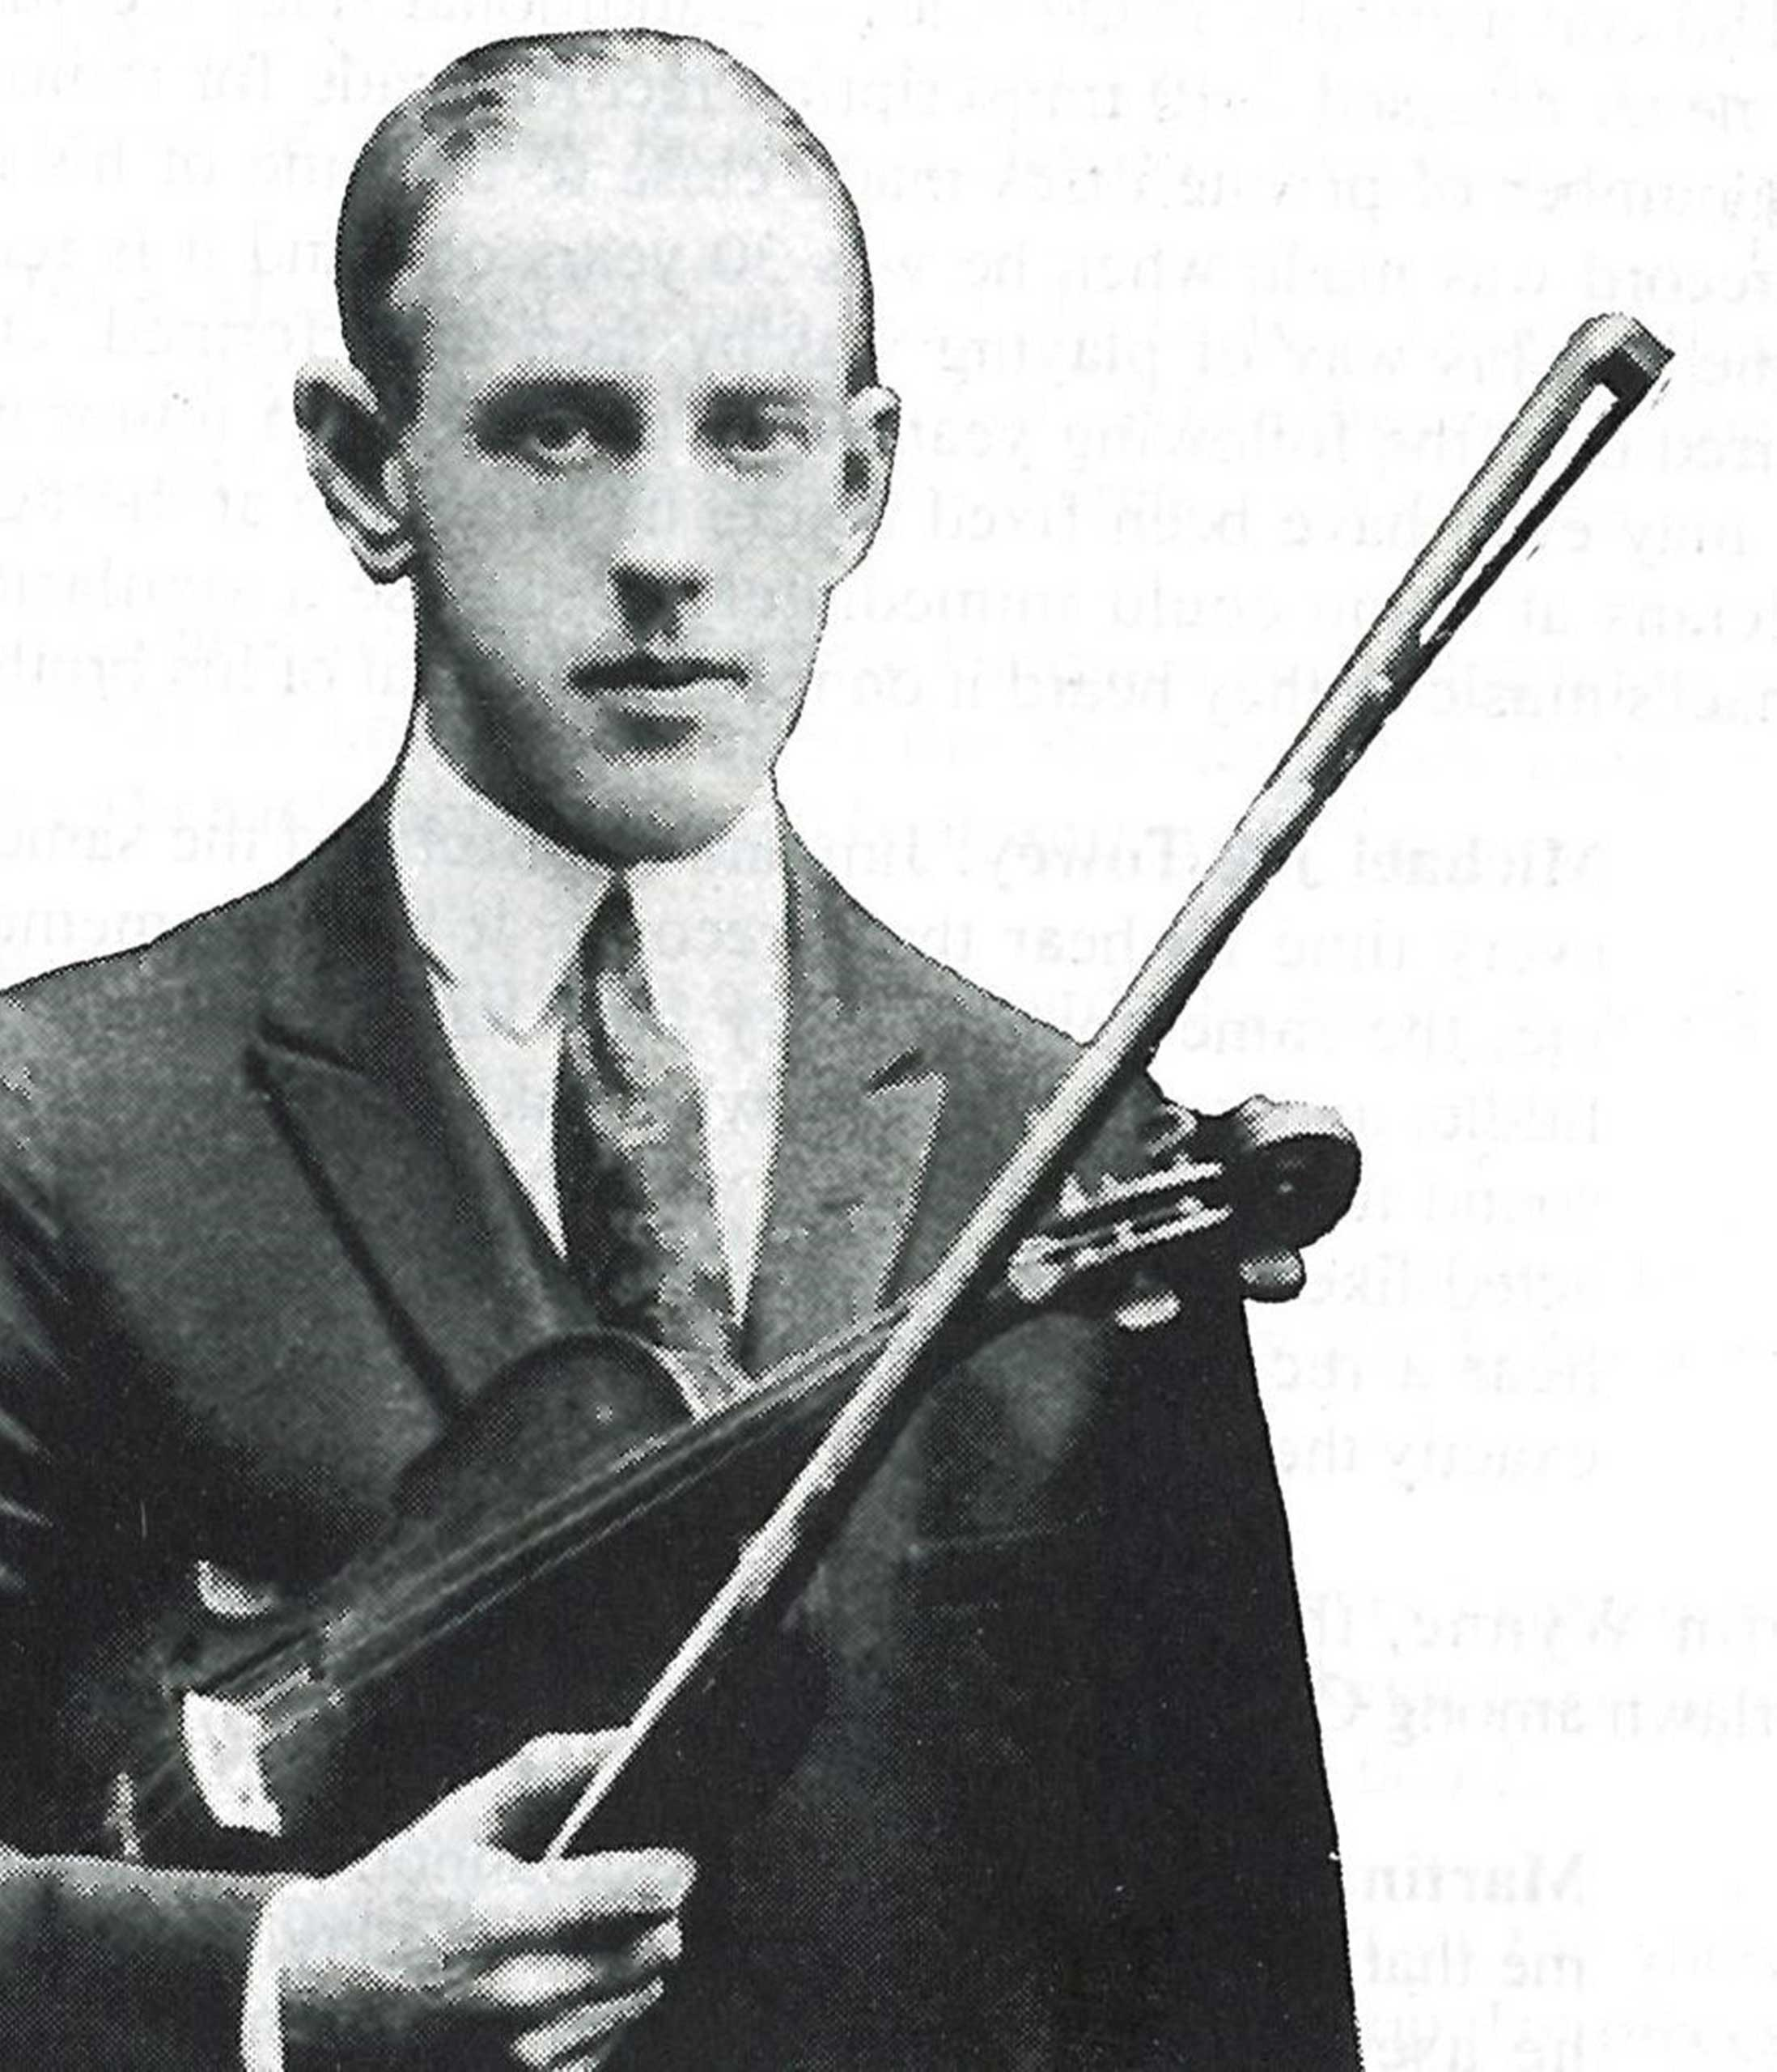 Irish fiddler Michael Coleman, who moved to New York City in 1914, brought new respect to traditional Irish music with his highly skilled playing. (Viva Voce/Library of Congress)